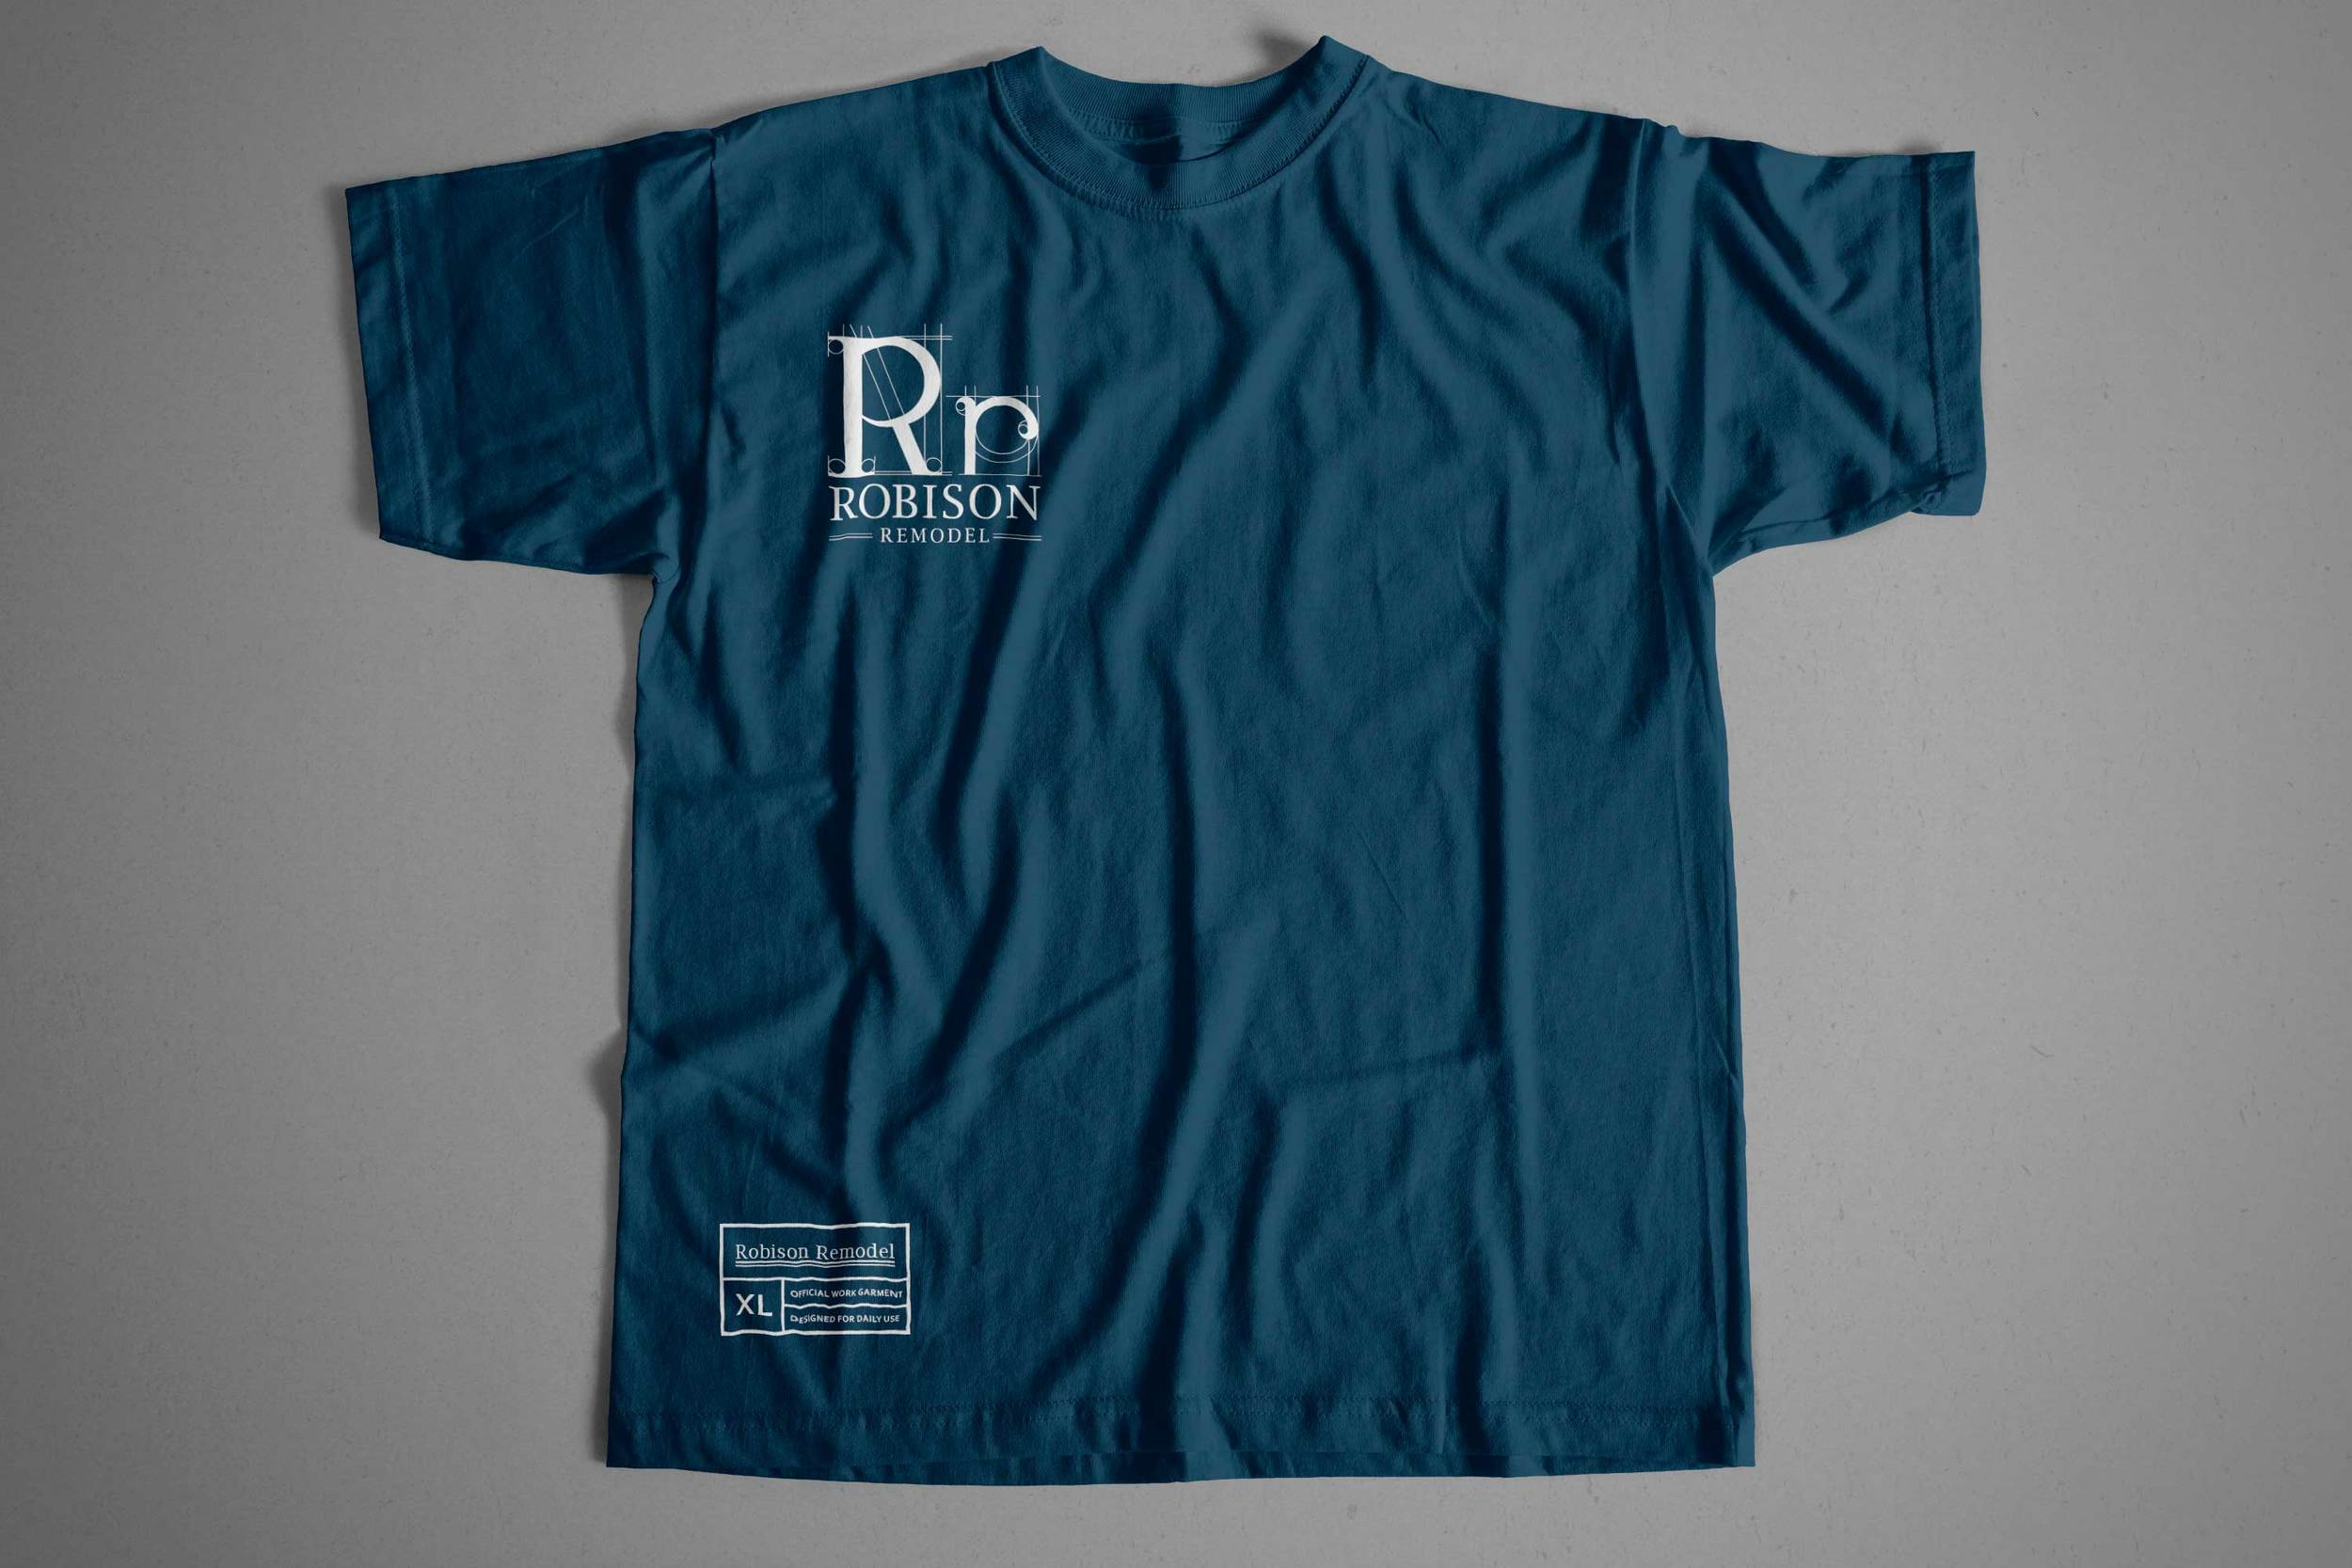 Robison Remodel work apparel